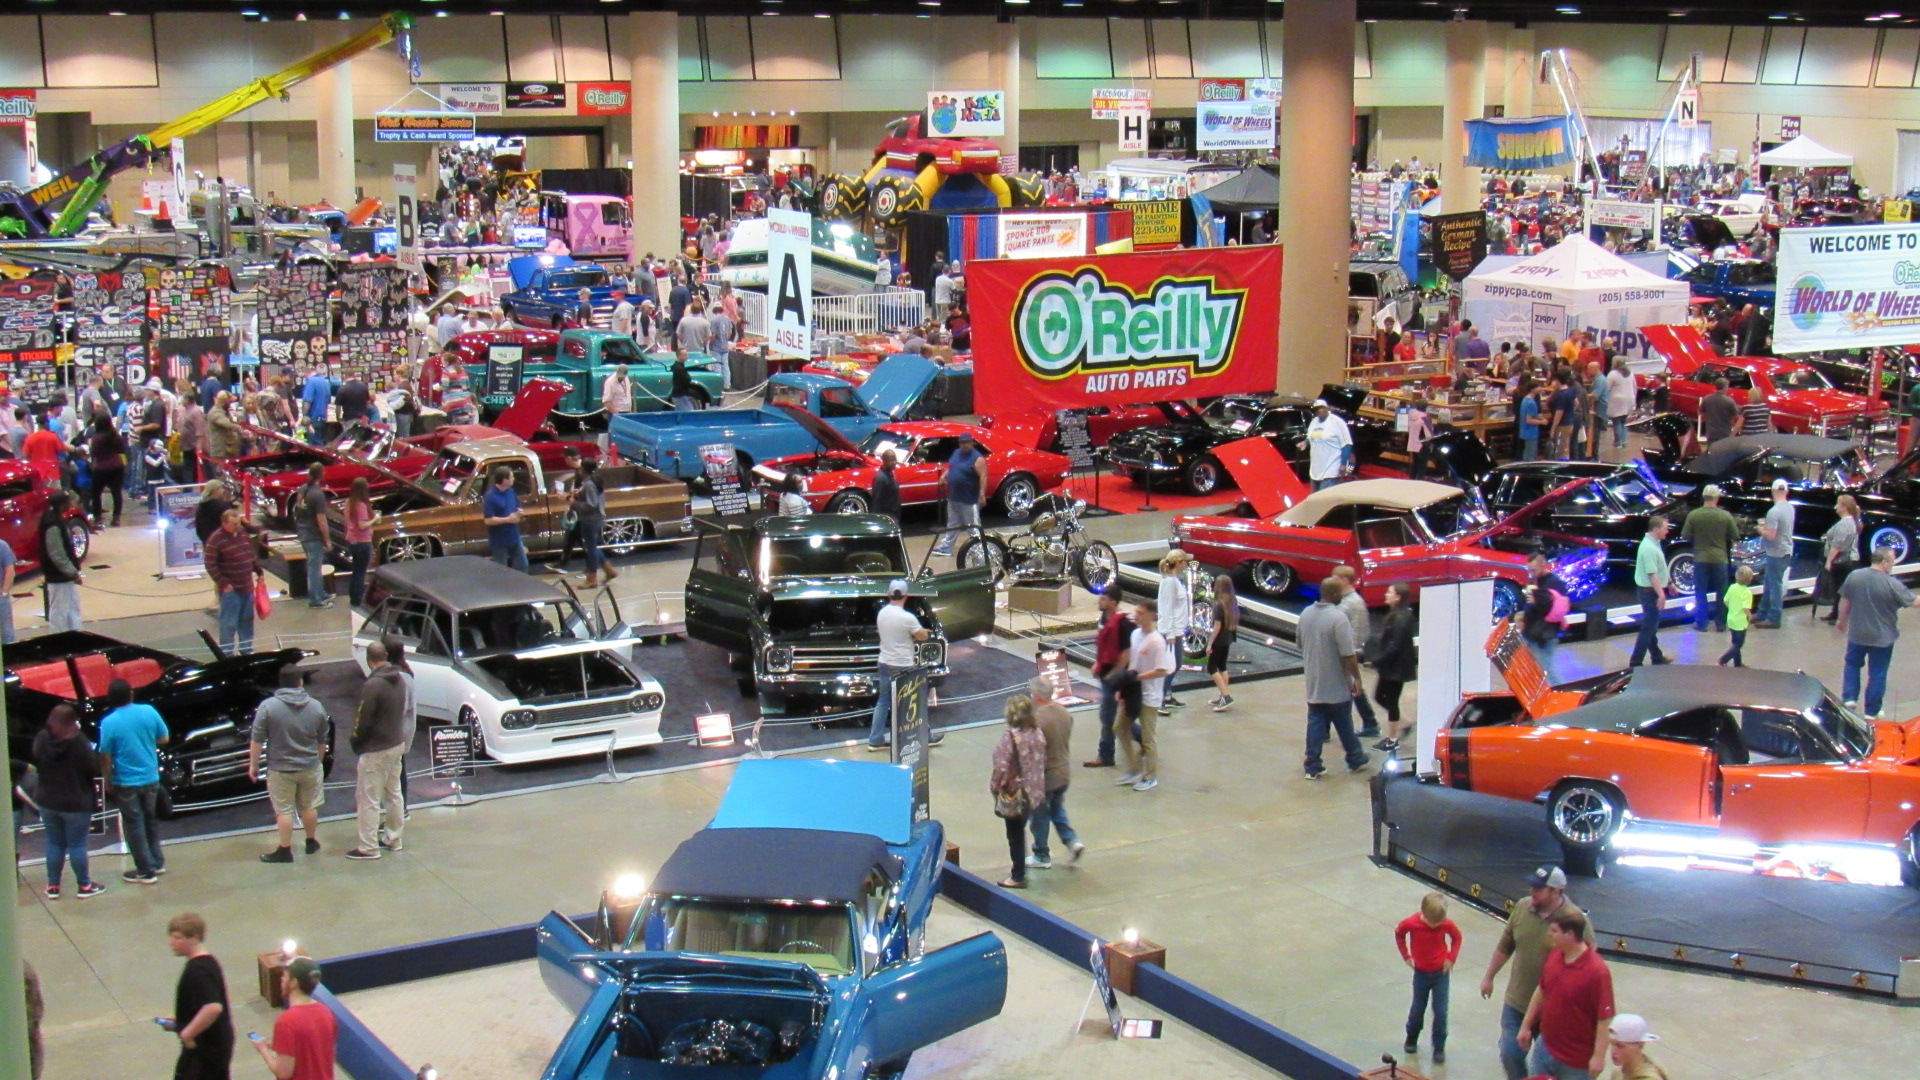 OReilly Auto Parts World Of Wheels The RPM Standard - Car show birmingham al